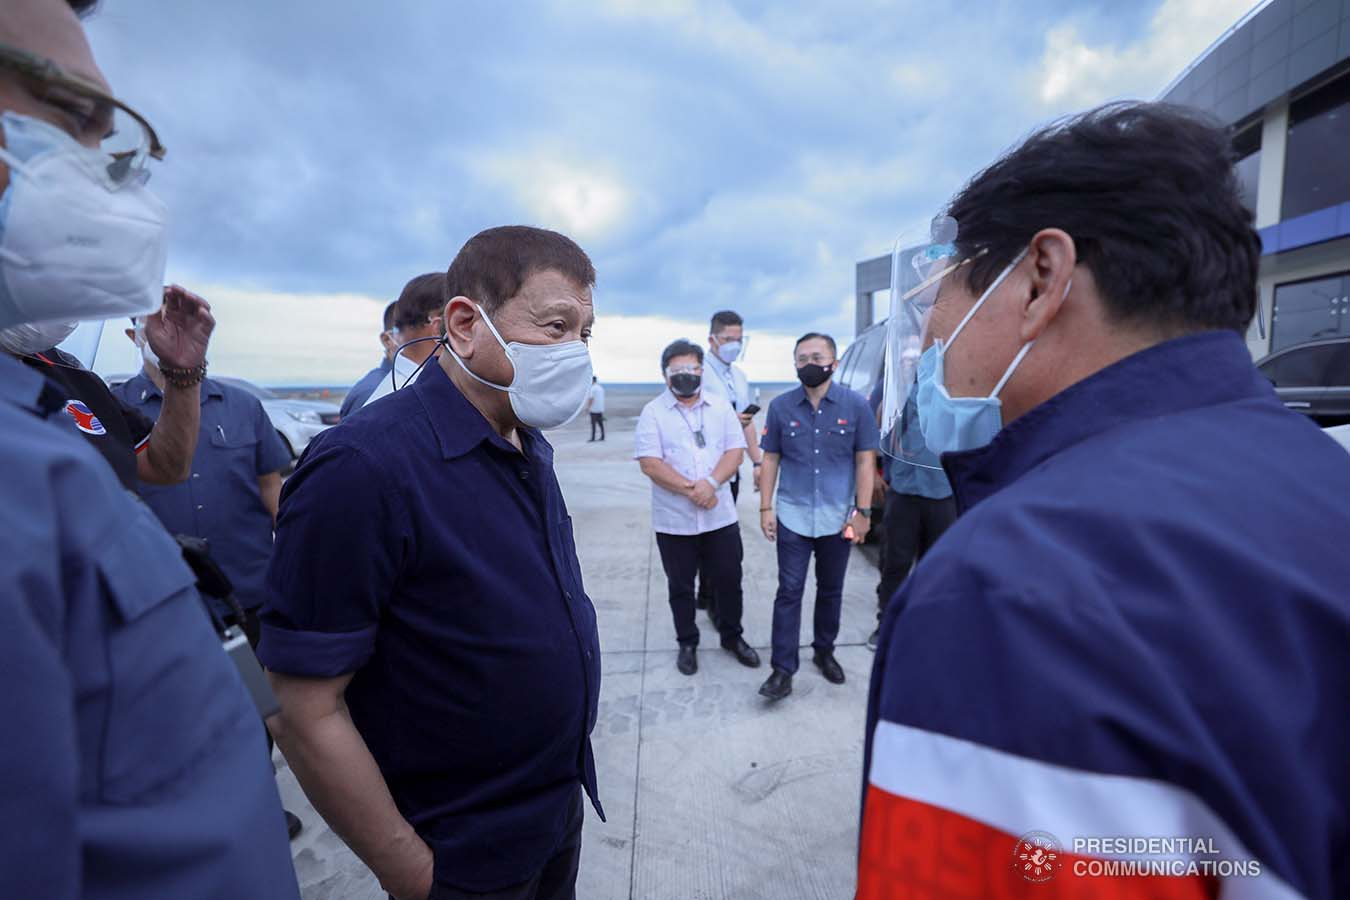 President Rodrigo Roa Duterte discusses matters with Labor and Employment Secretary Silvestre Bello III after leading the inauguration of the Port Operations Building at the Port of Dumaguete in Dumaguete City, Negros Oriental on March 11, 2021. ACE MORANDANTE/ PRESIDENTIAL PHOTO